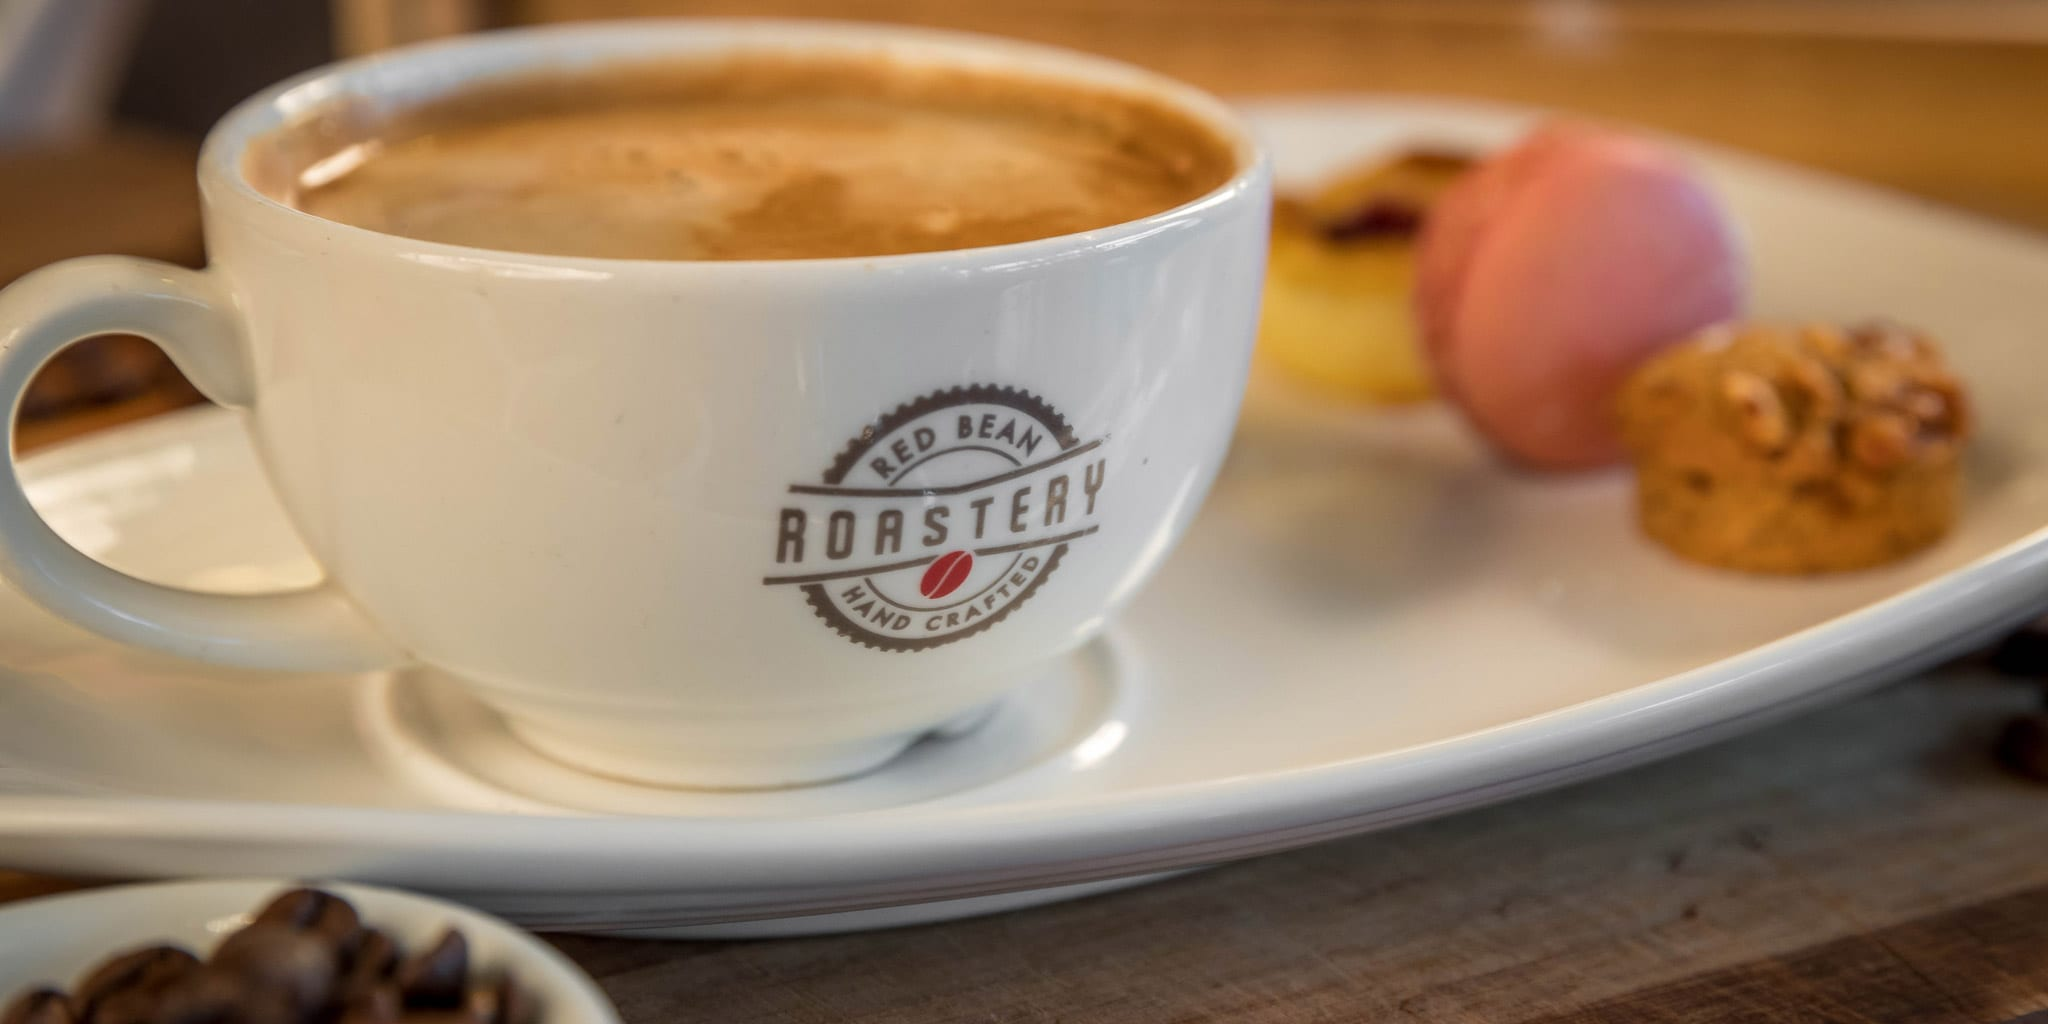 Coffee-Cup-Red-Bean-Roastery